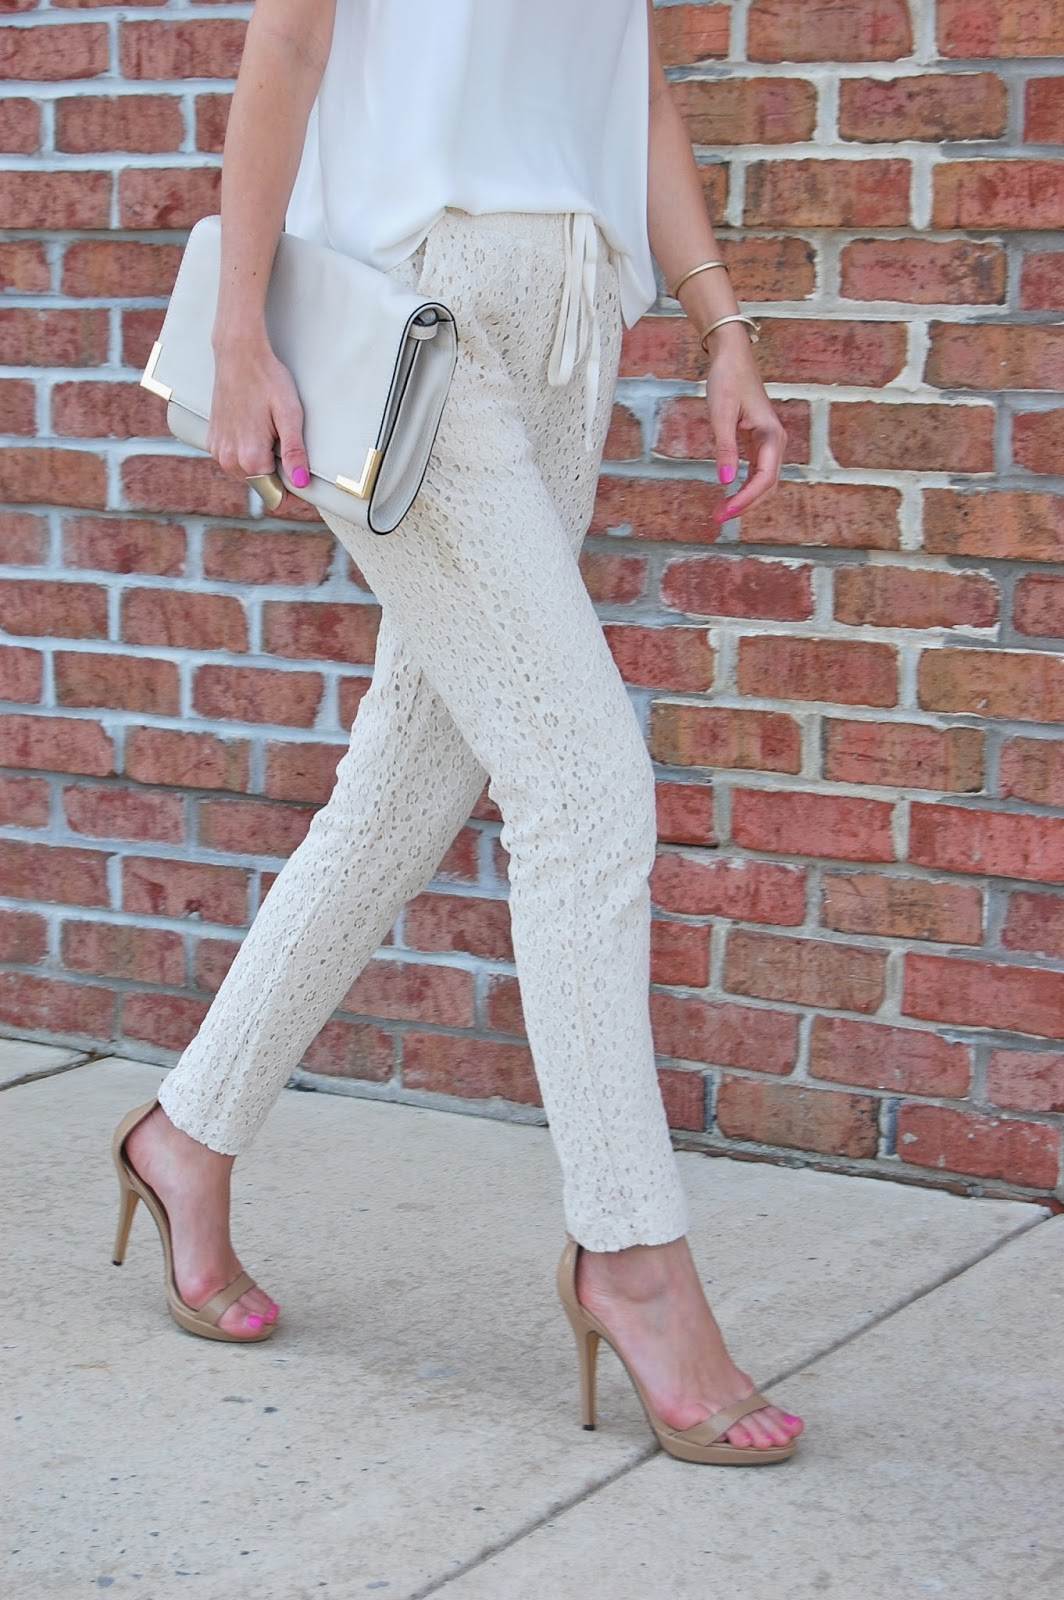 Wearing Loft Lou & Grey lace drawstring pants, Michael Antonio Lovina sandal, Bcbg Maxazria cat eye sunglasses